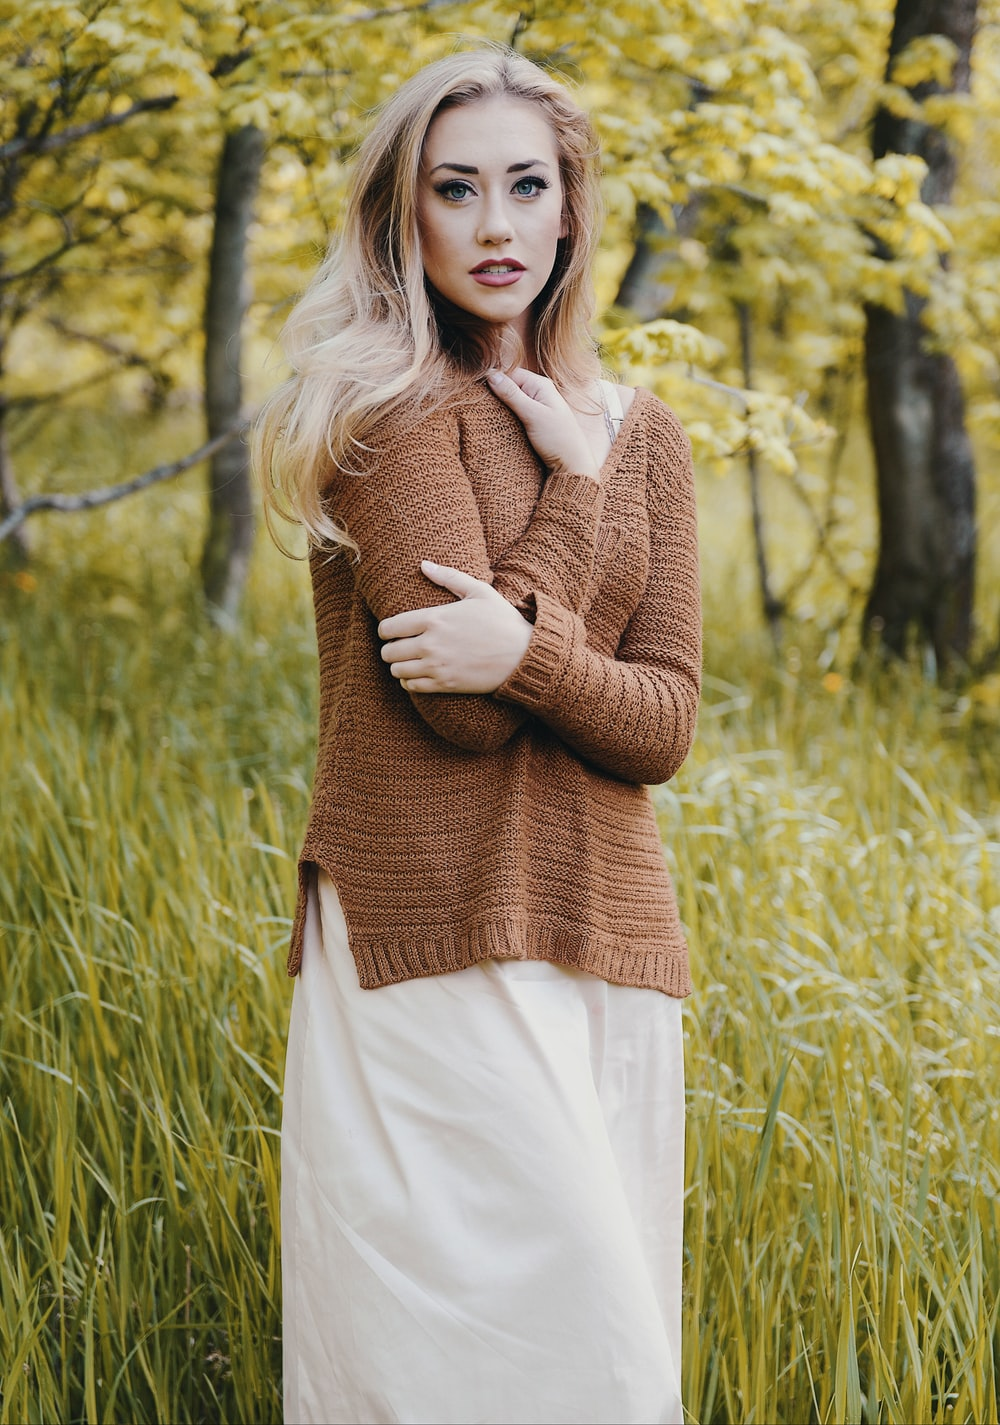 woman wearing brown sweater standing on green grass field